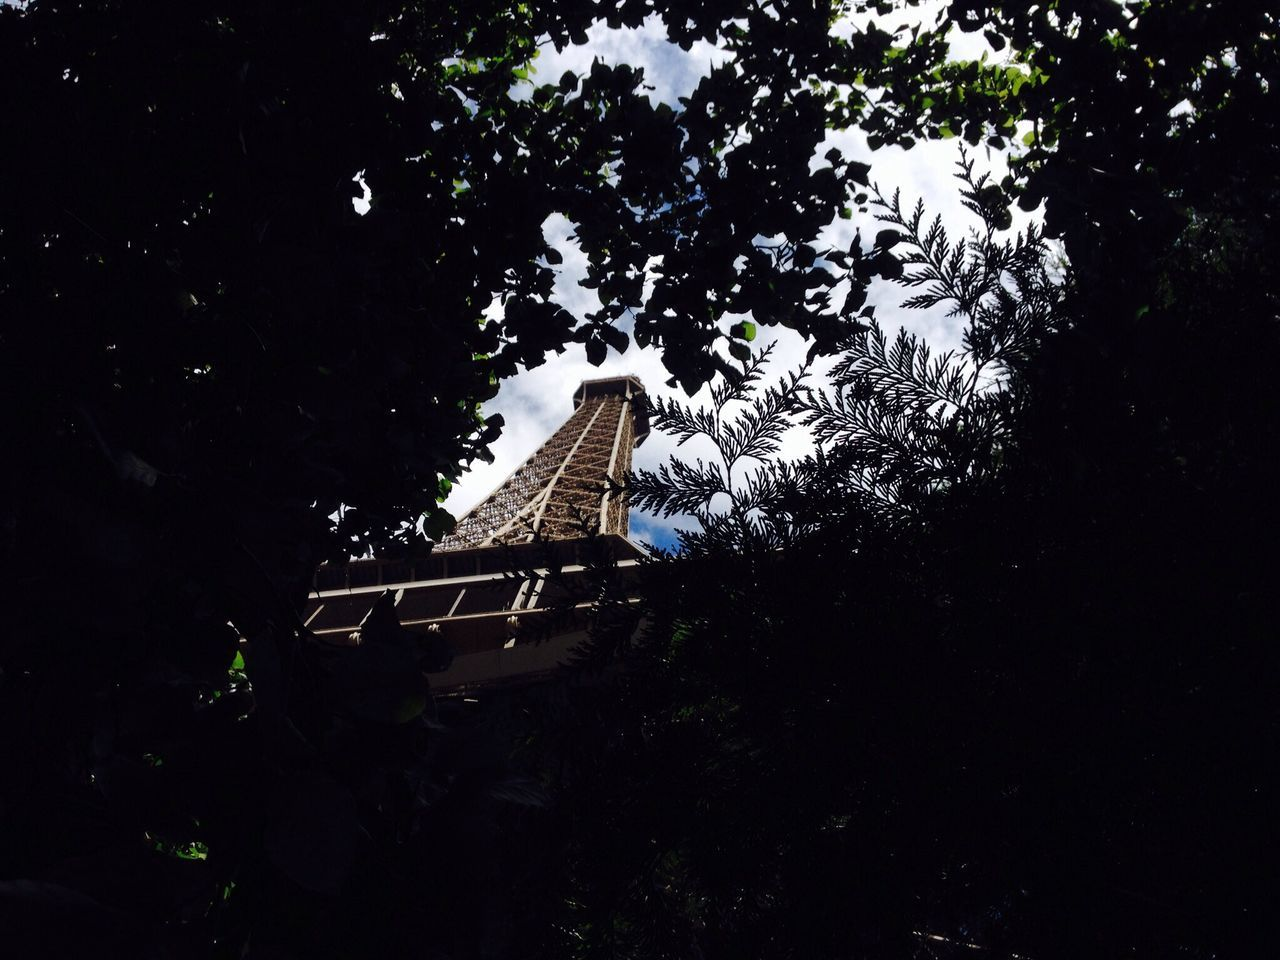 Low Angle View Of Eiffel Tower Seen Through Trees